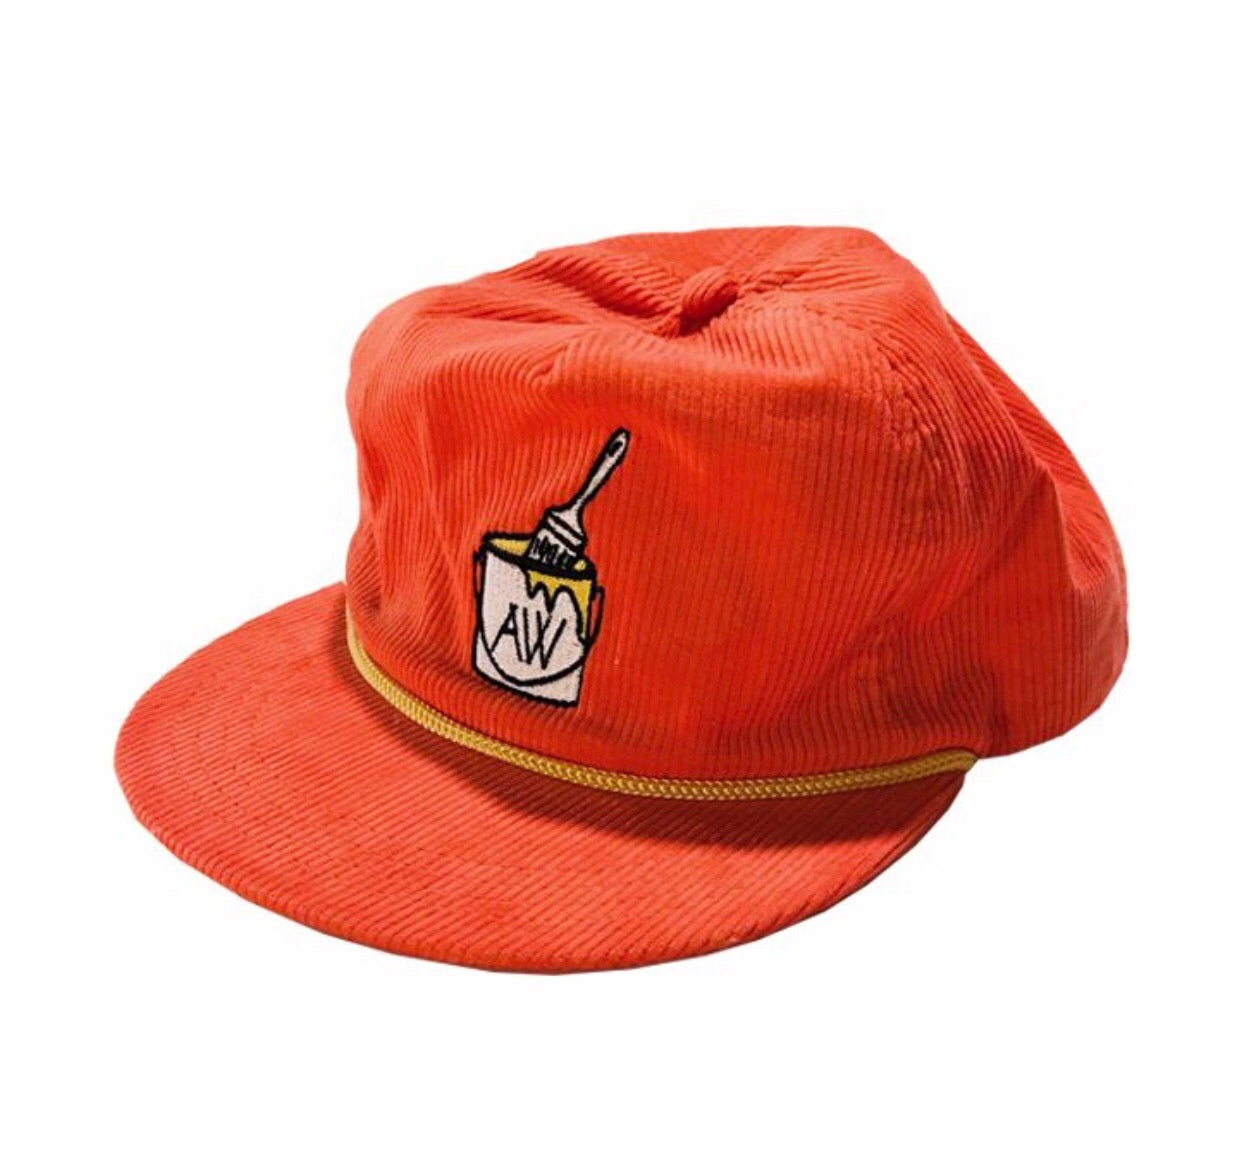 Paint Can Corduroy Hat